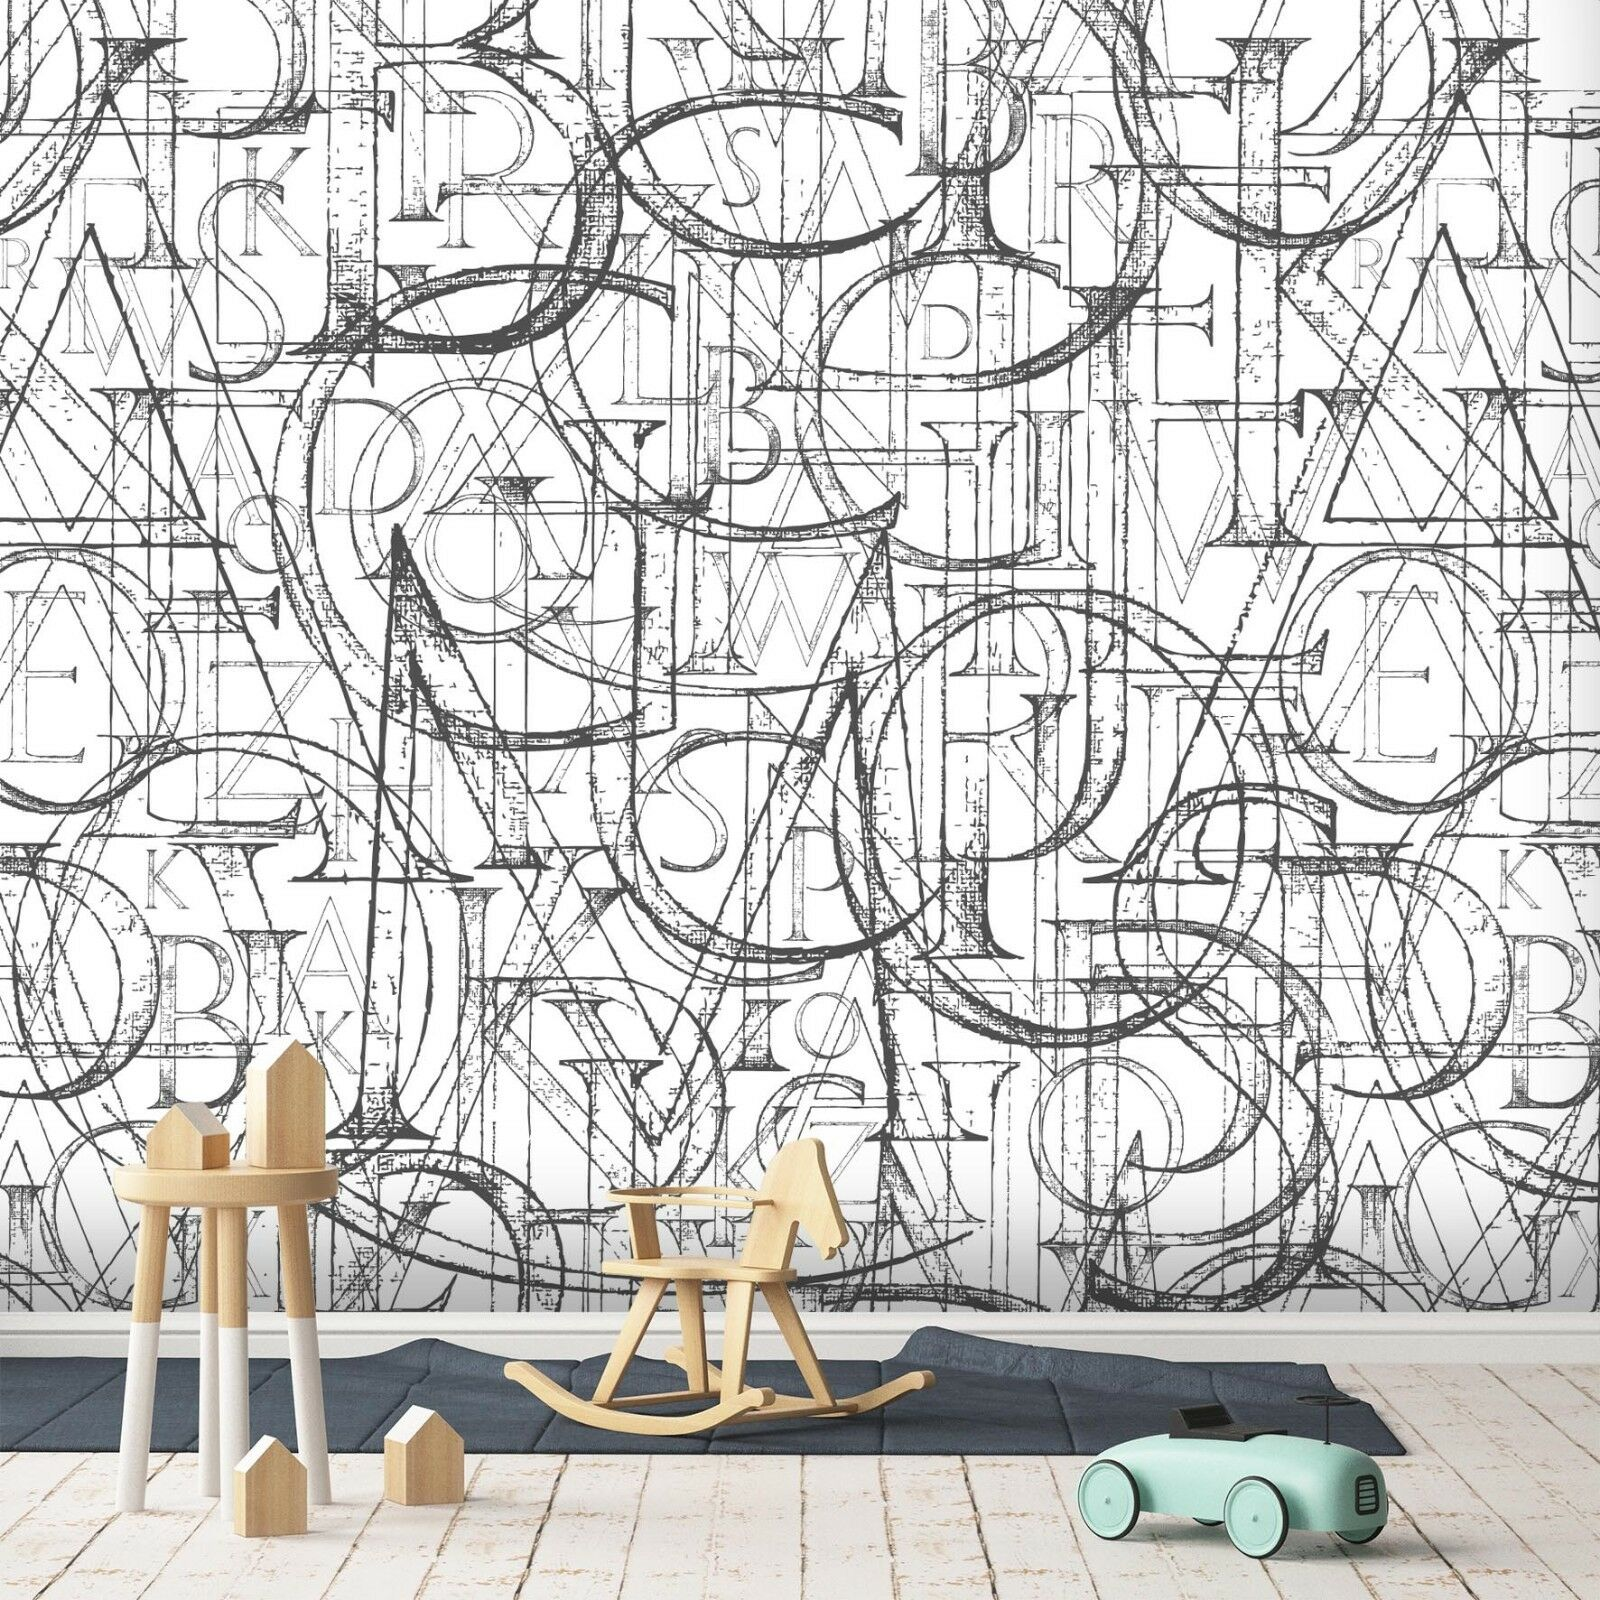 3D Graphic 7125 Wall Paper Print Wall Decal Deco Indoor Wall Murals US Summer